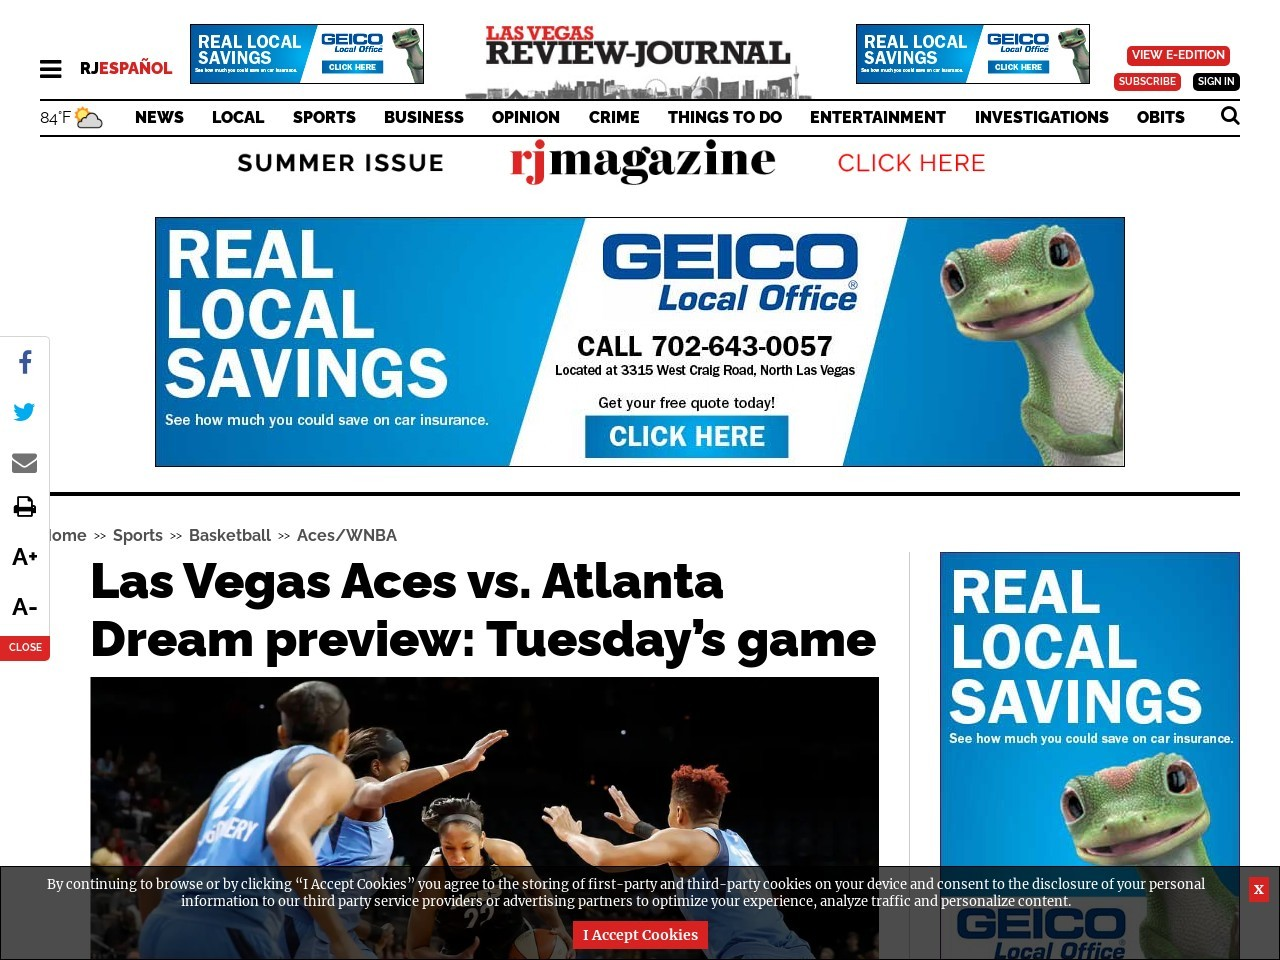 Las Vegas Aces vs. Atlanta Dream preview: Tuesday's game